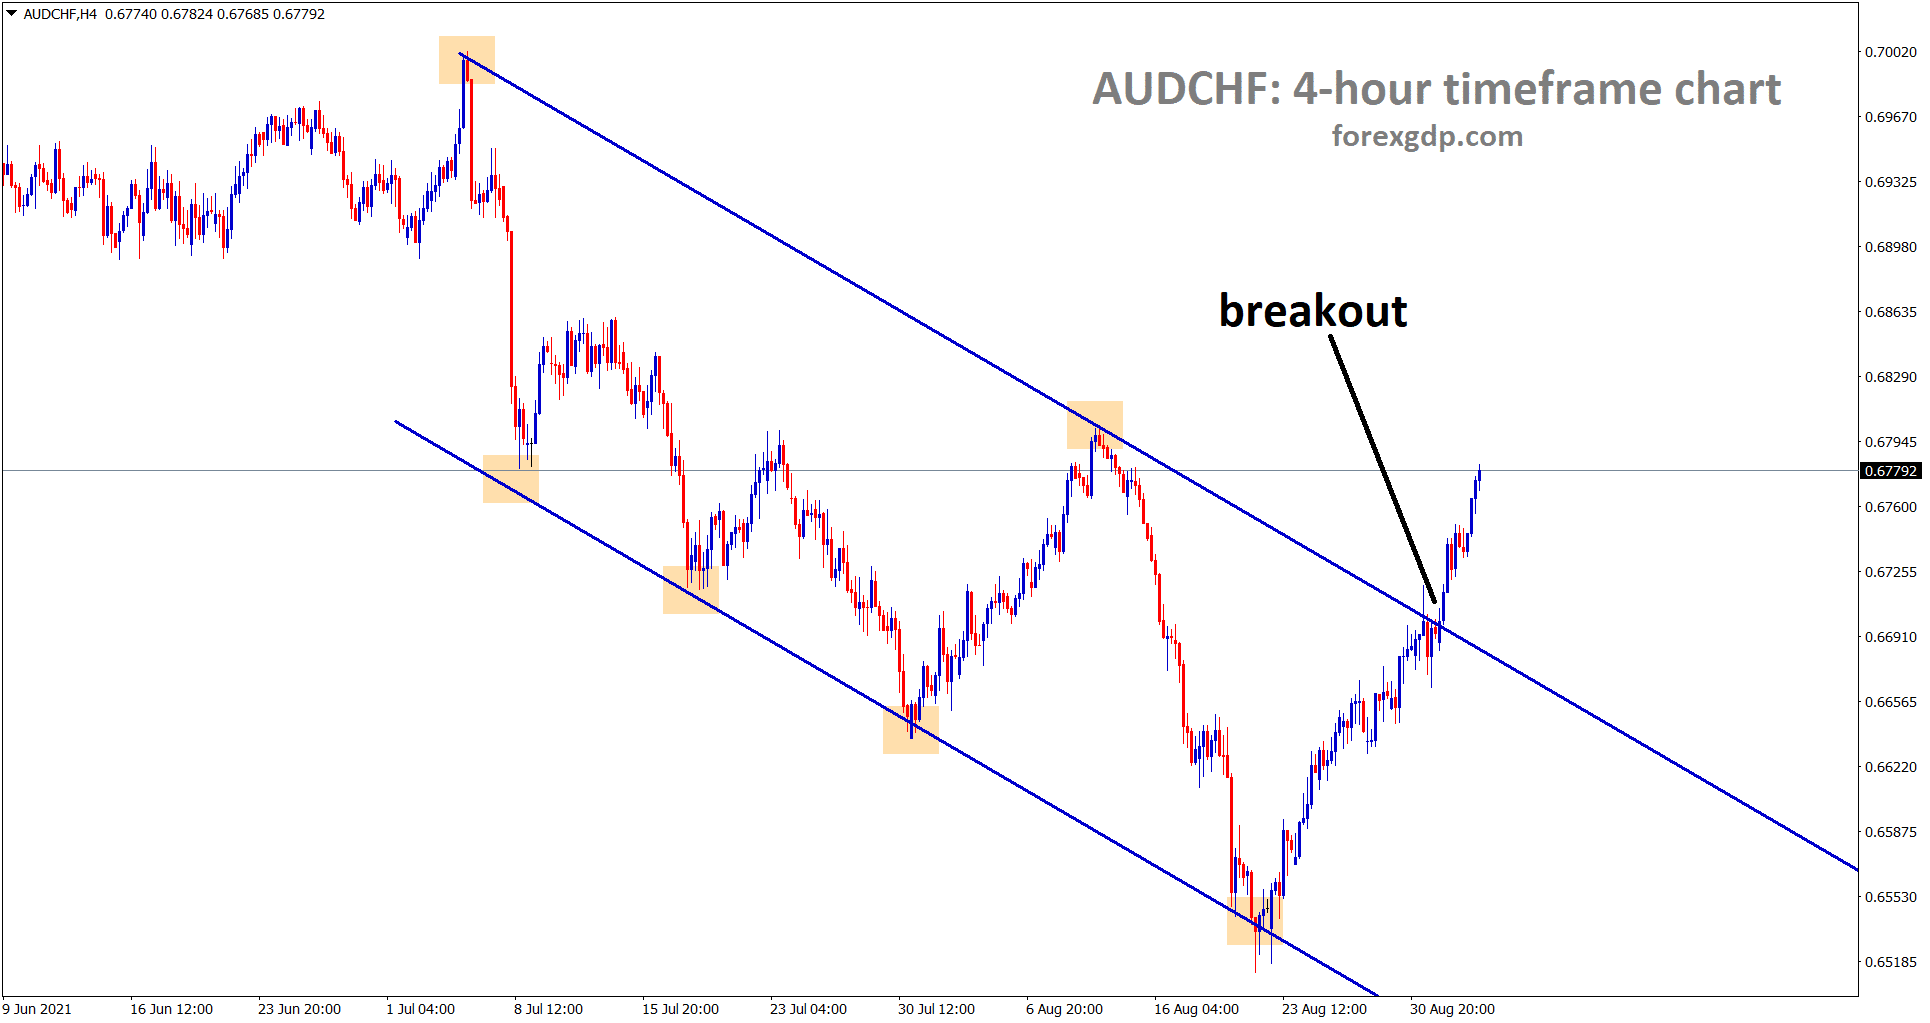 AUDCHF has broken the top of the descending channel and its going to reach the nearest resistance area